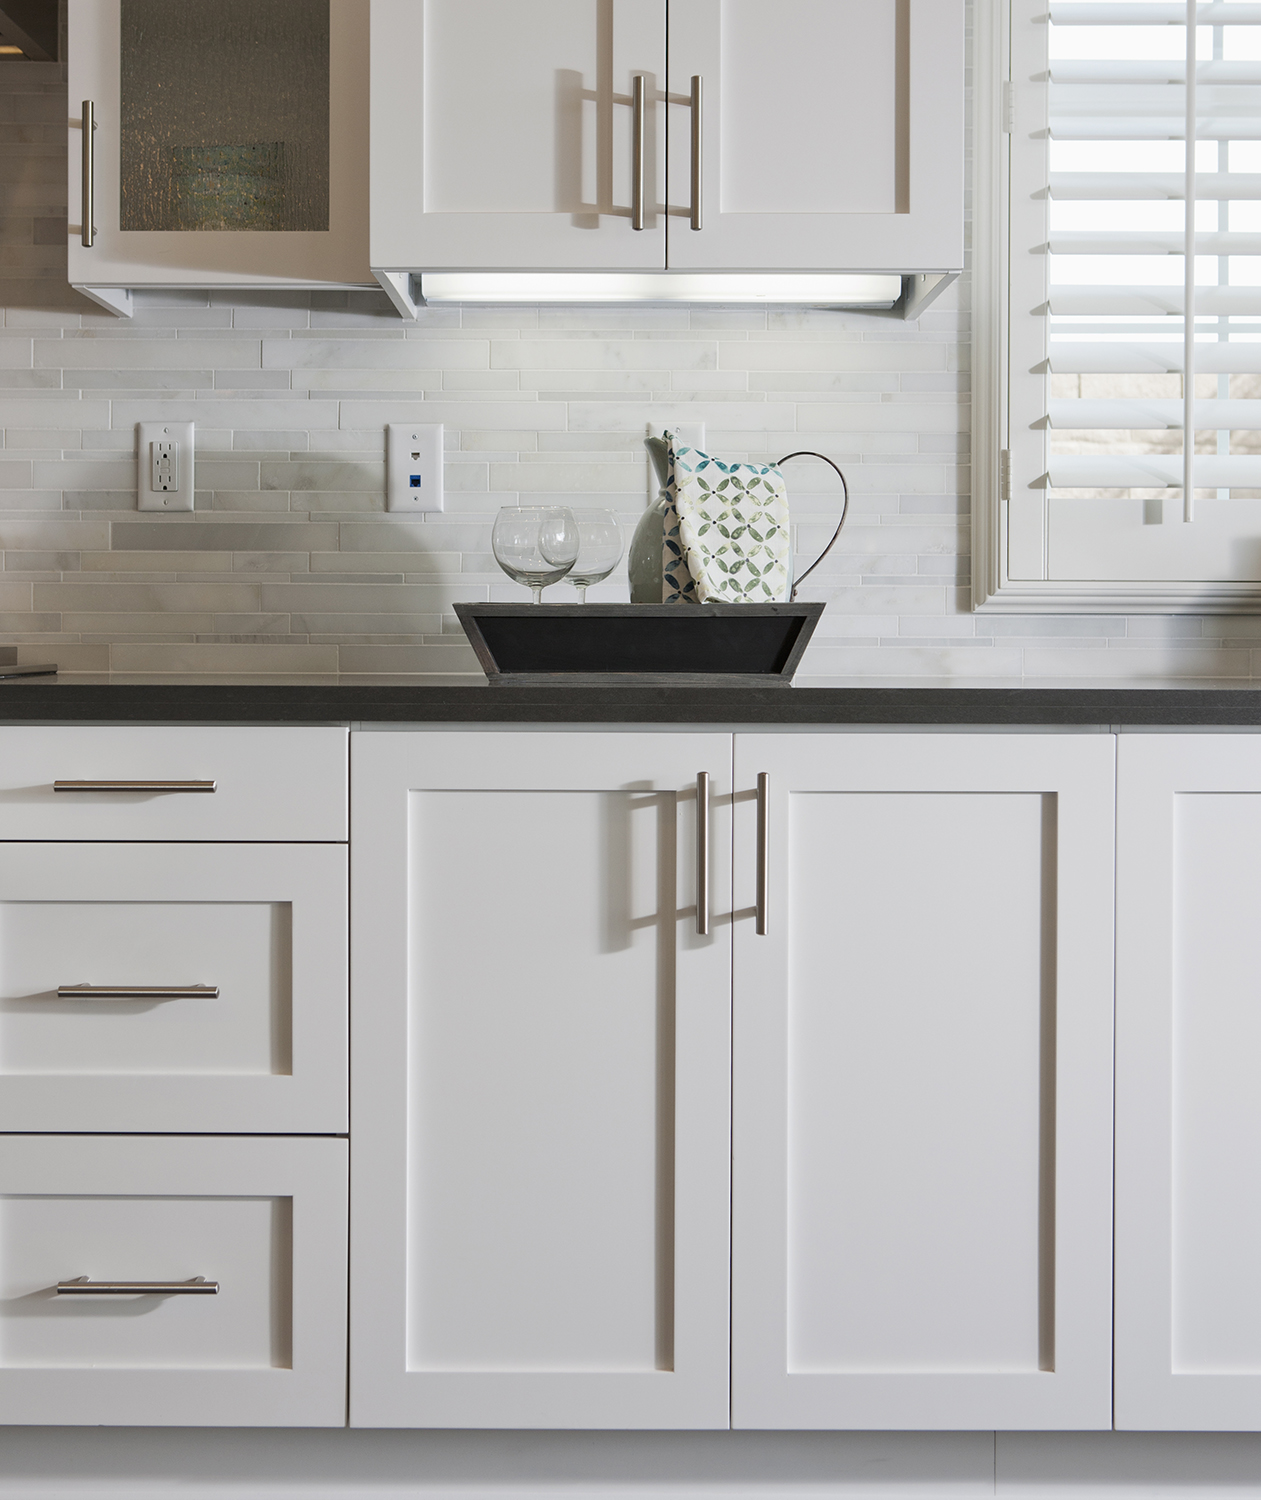 White kitchen cabinets with steel pulls